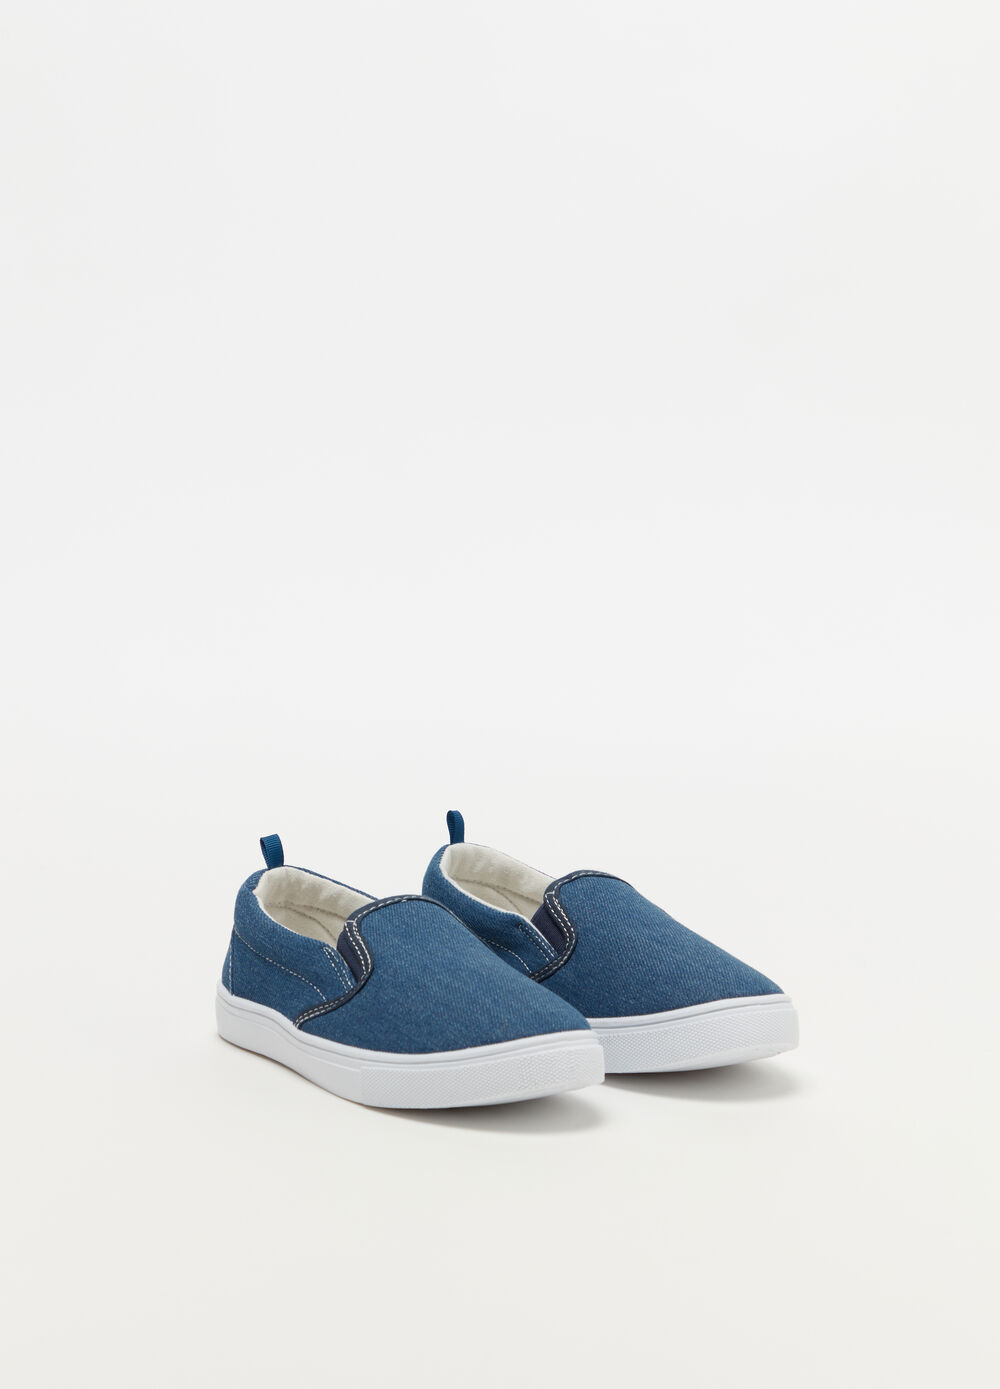 Solid colour denim slip-ons